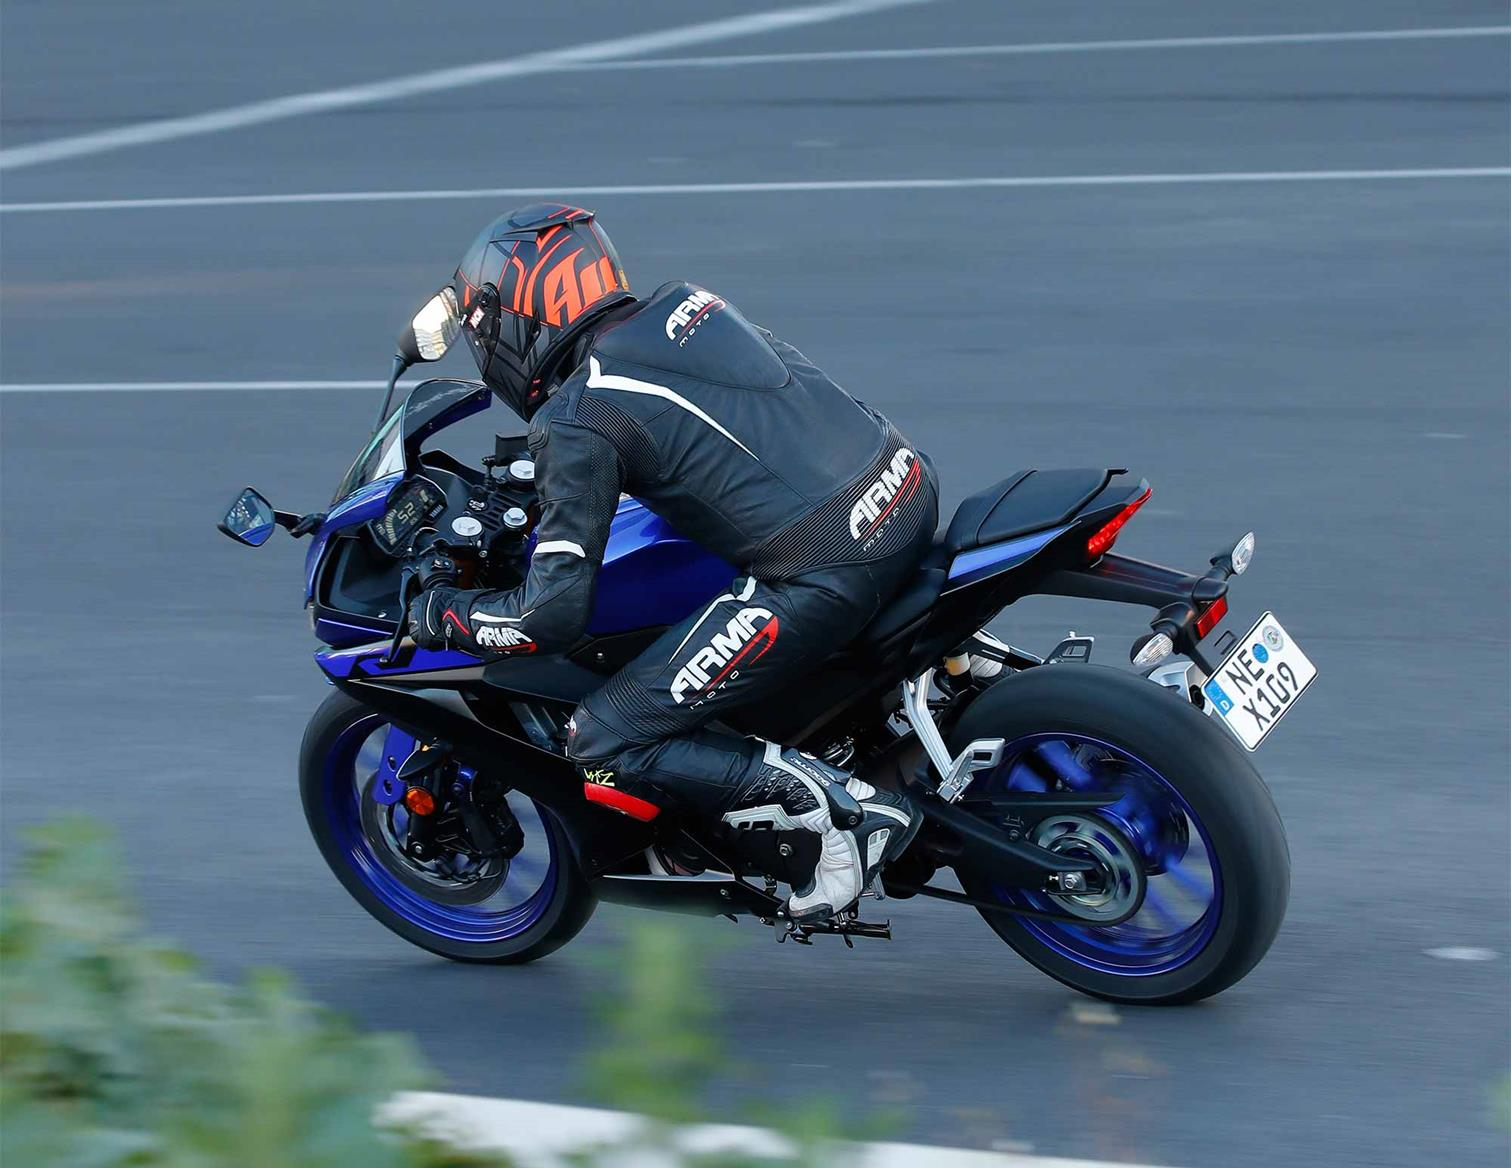 the rear end of the yamaha yzf-r125